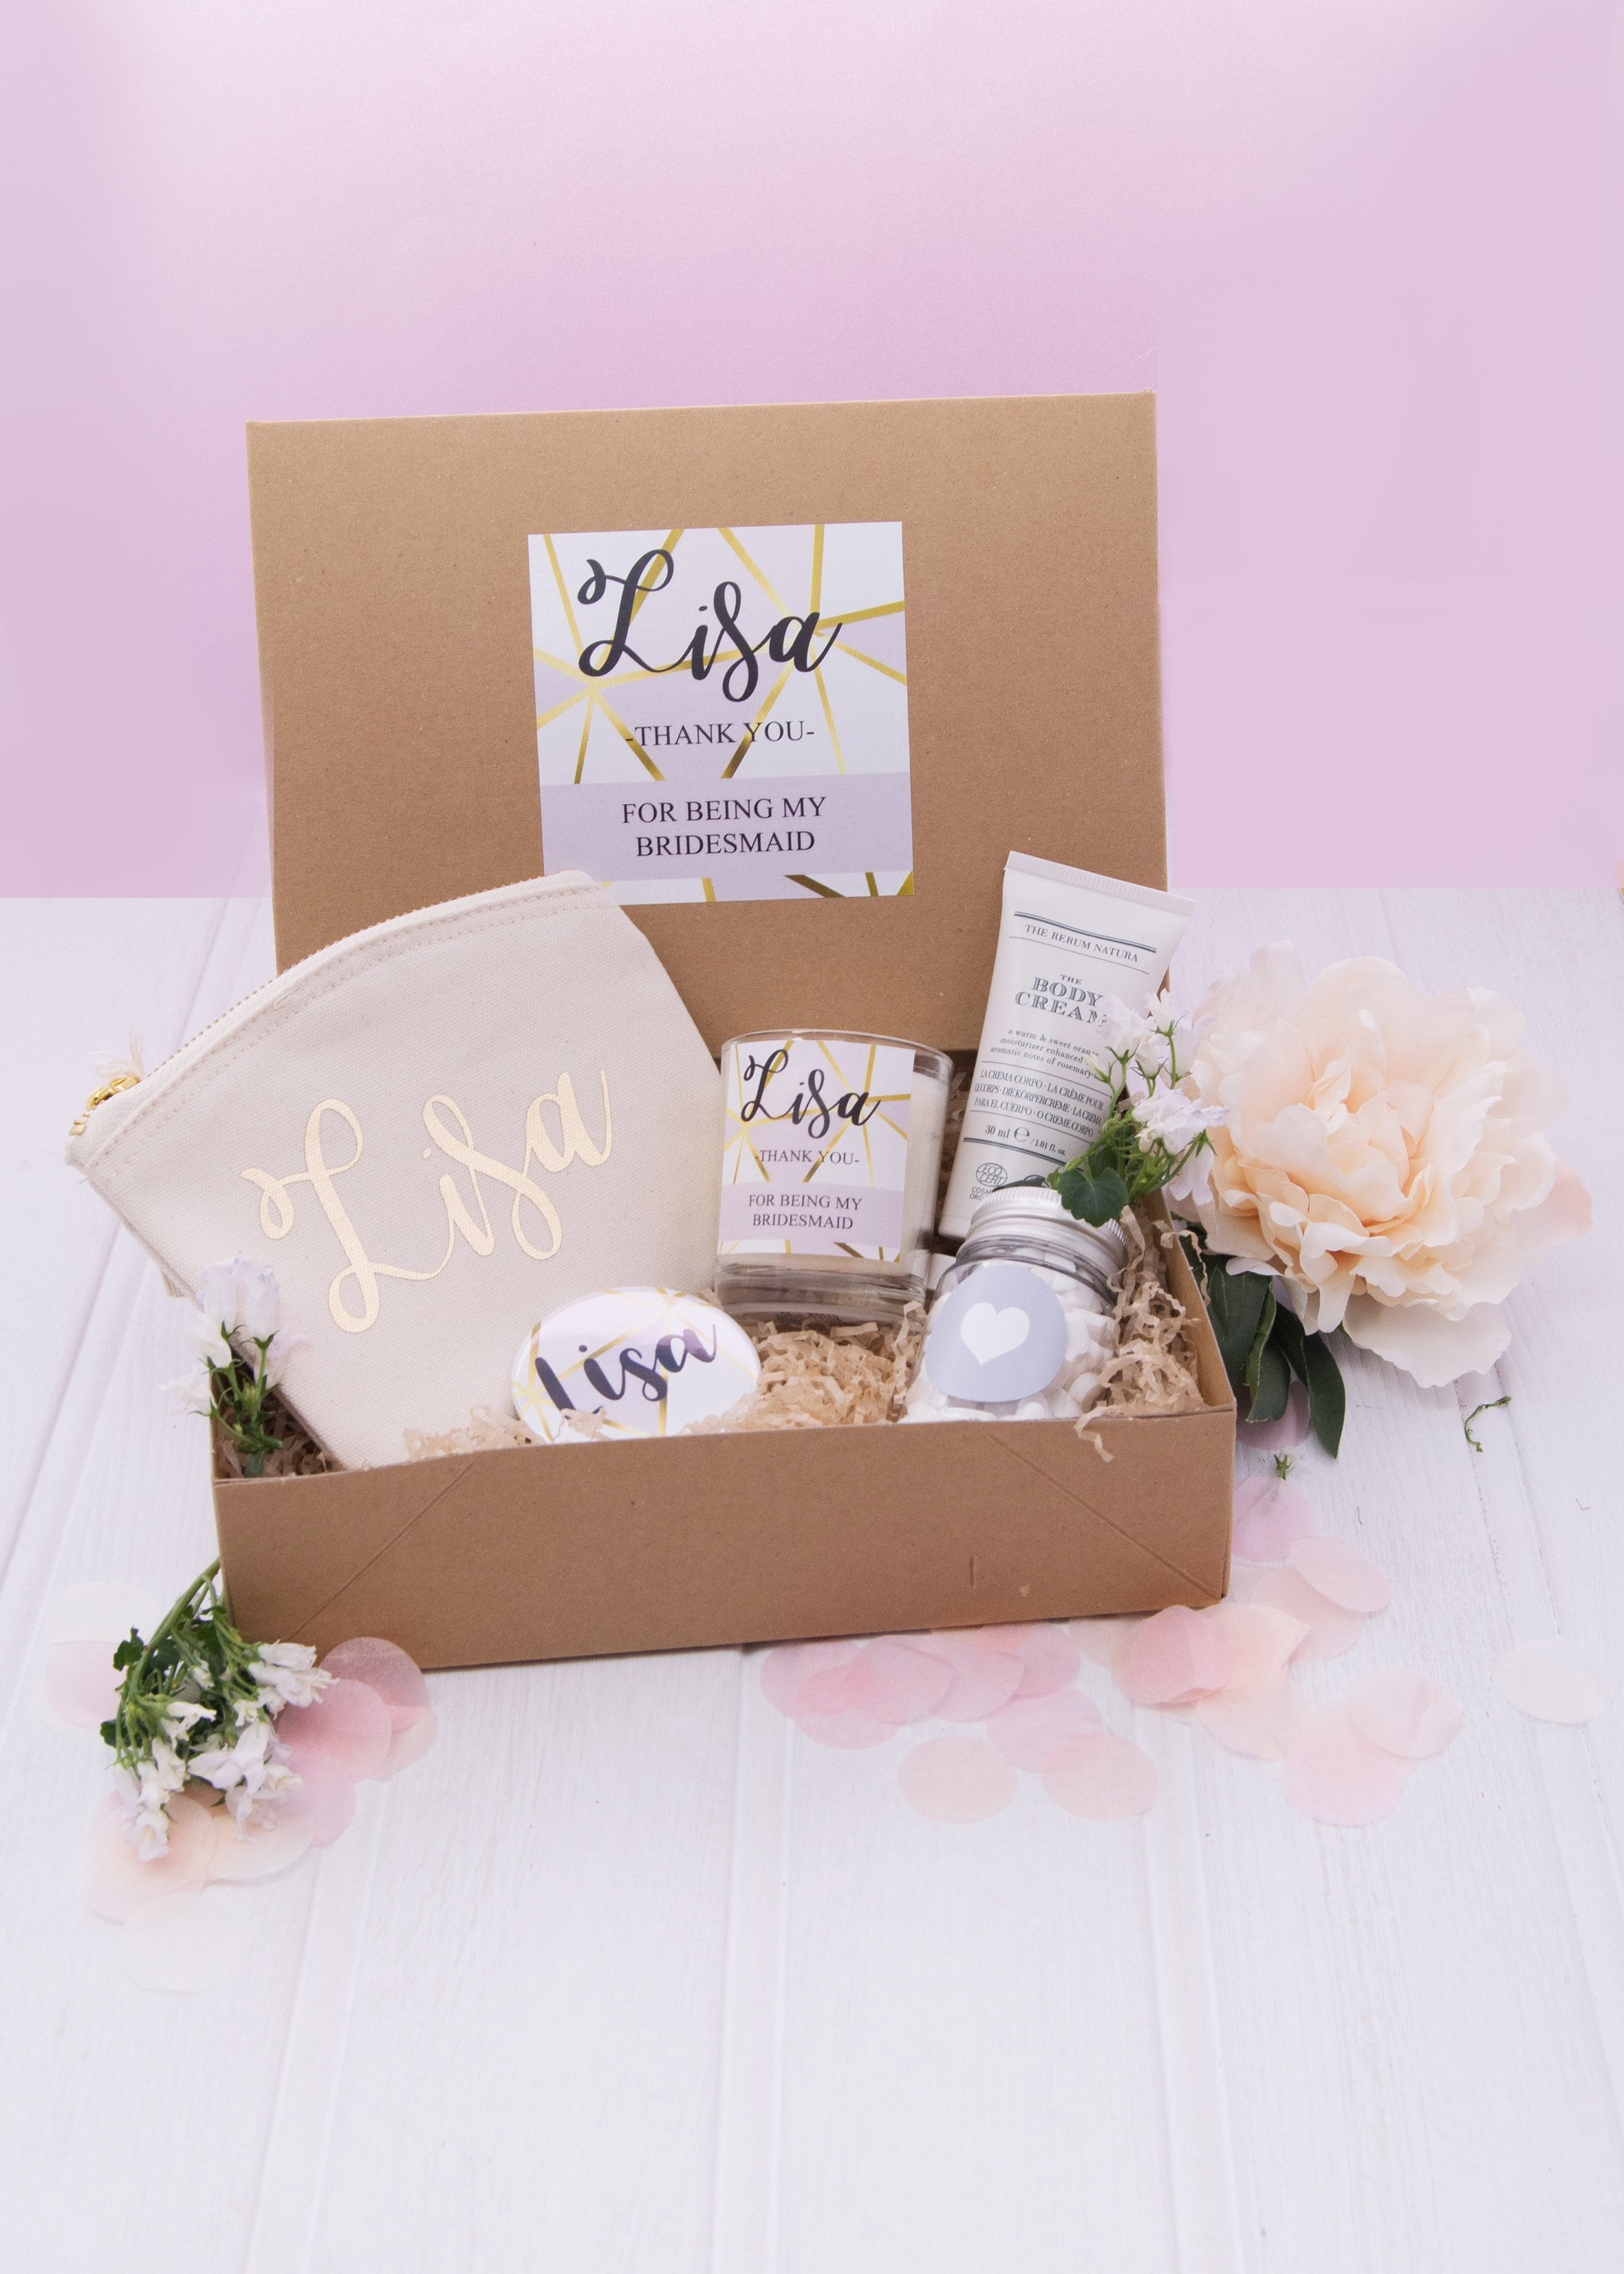 Personalised Bridesmaid Gift Box Filled Thank You Bridesmaid Box Bridesmaid Gift Set Wedding Thank You Gifts Filled Gift Set Gift Box